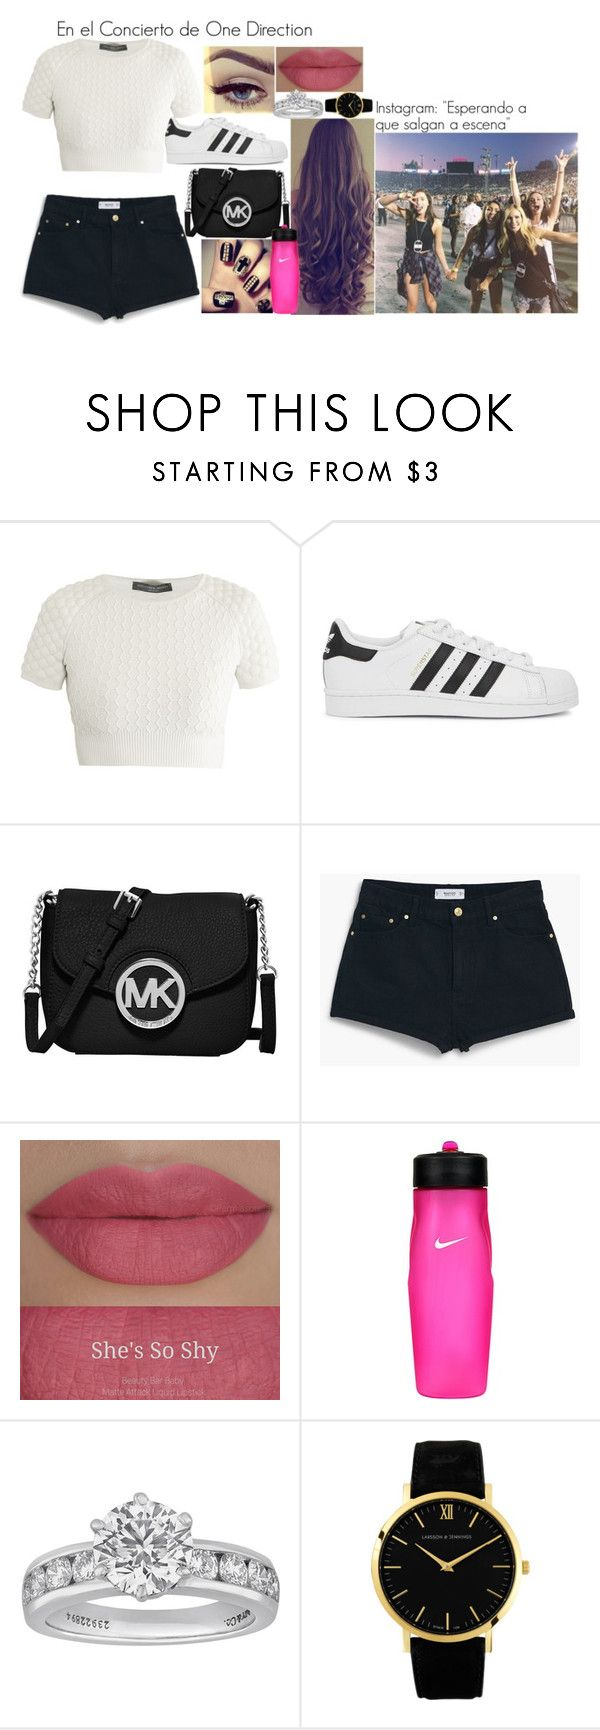 """#En el Concierto de One Direction"" by valenpocitovillarroel on Polyvore featuring Alexander McQueen, adidas Originals, MICHAEL Michael Kors, MANGO, Lime Crime, She's So, NIKE, Tiffany & Co., Larsson & Jennings and women's clothing"